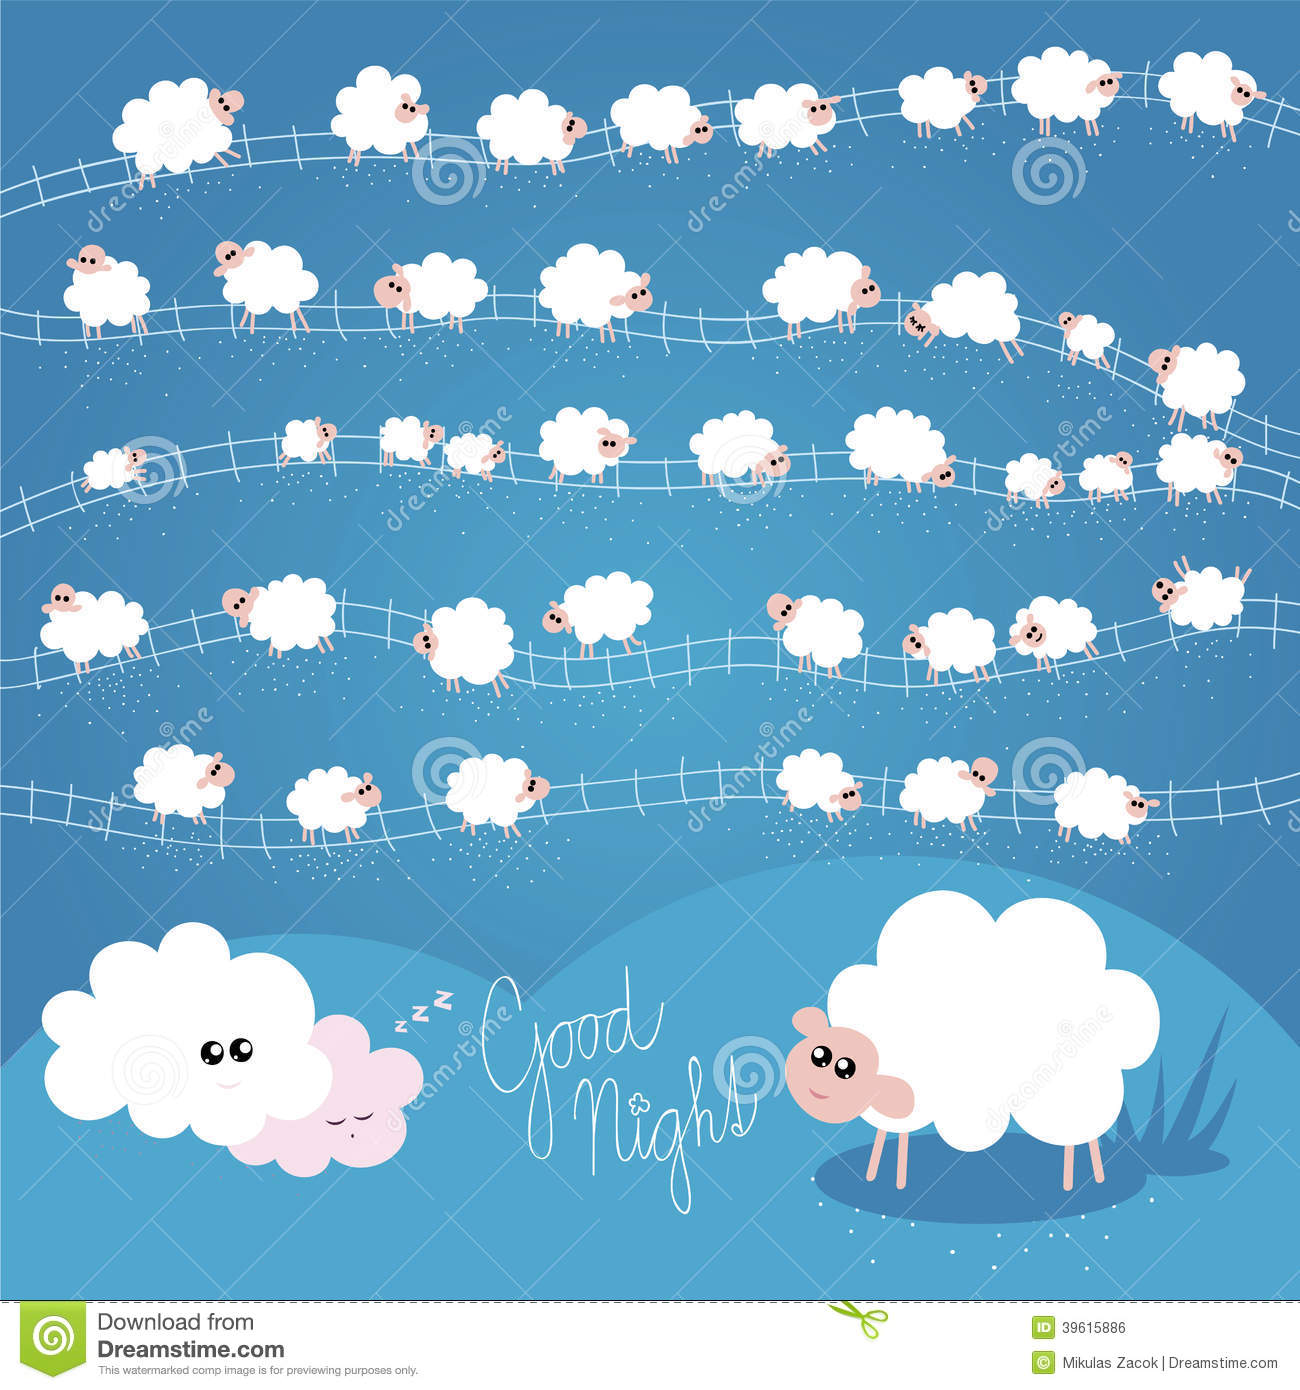 Good Night Vector Illustration for Kids with Individual Sheeps.